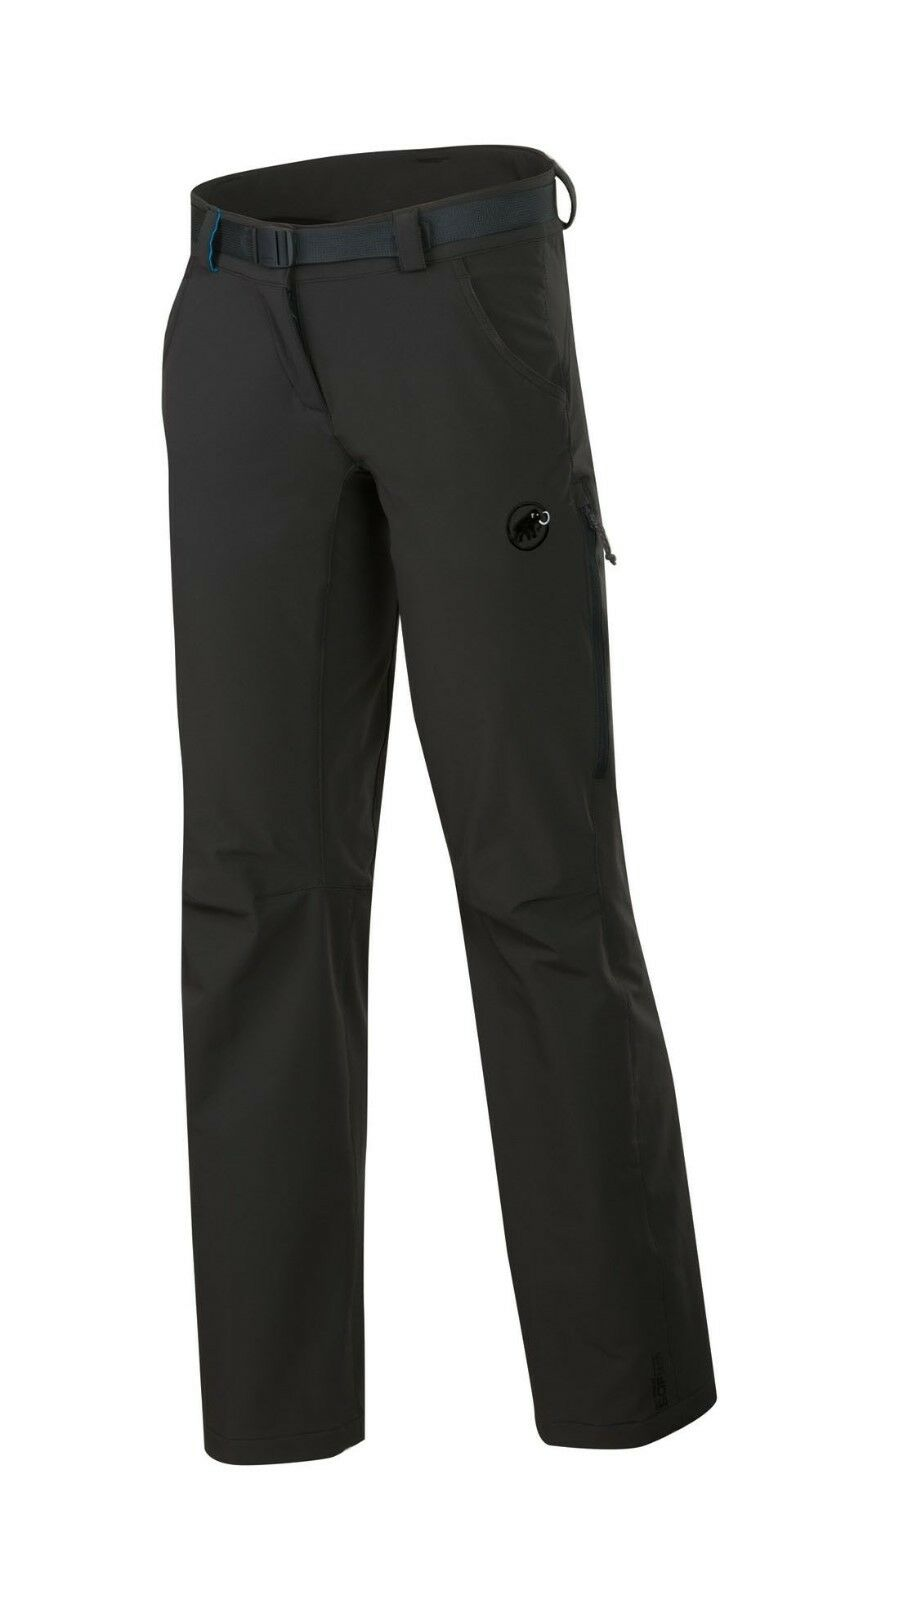 Mammut  Ally Pants - Womens graphite  size 8 regular fit  large selection